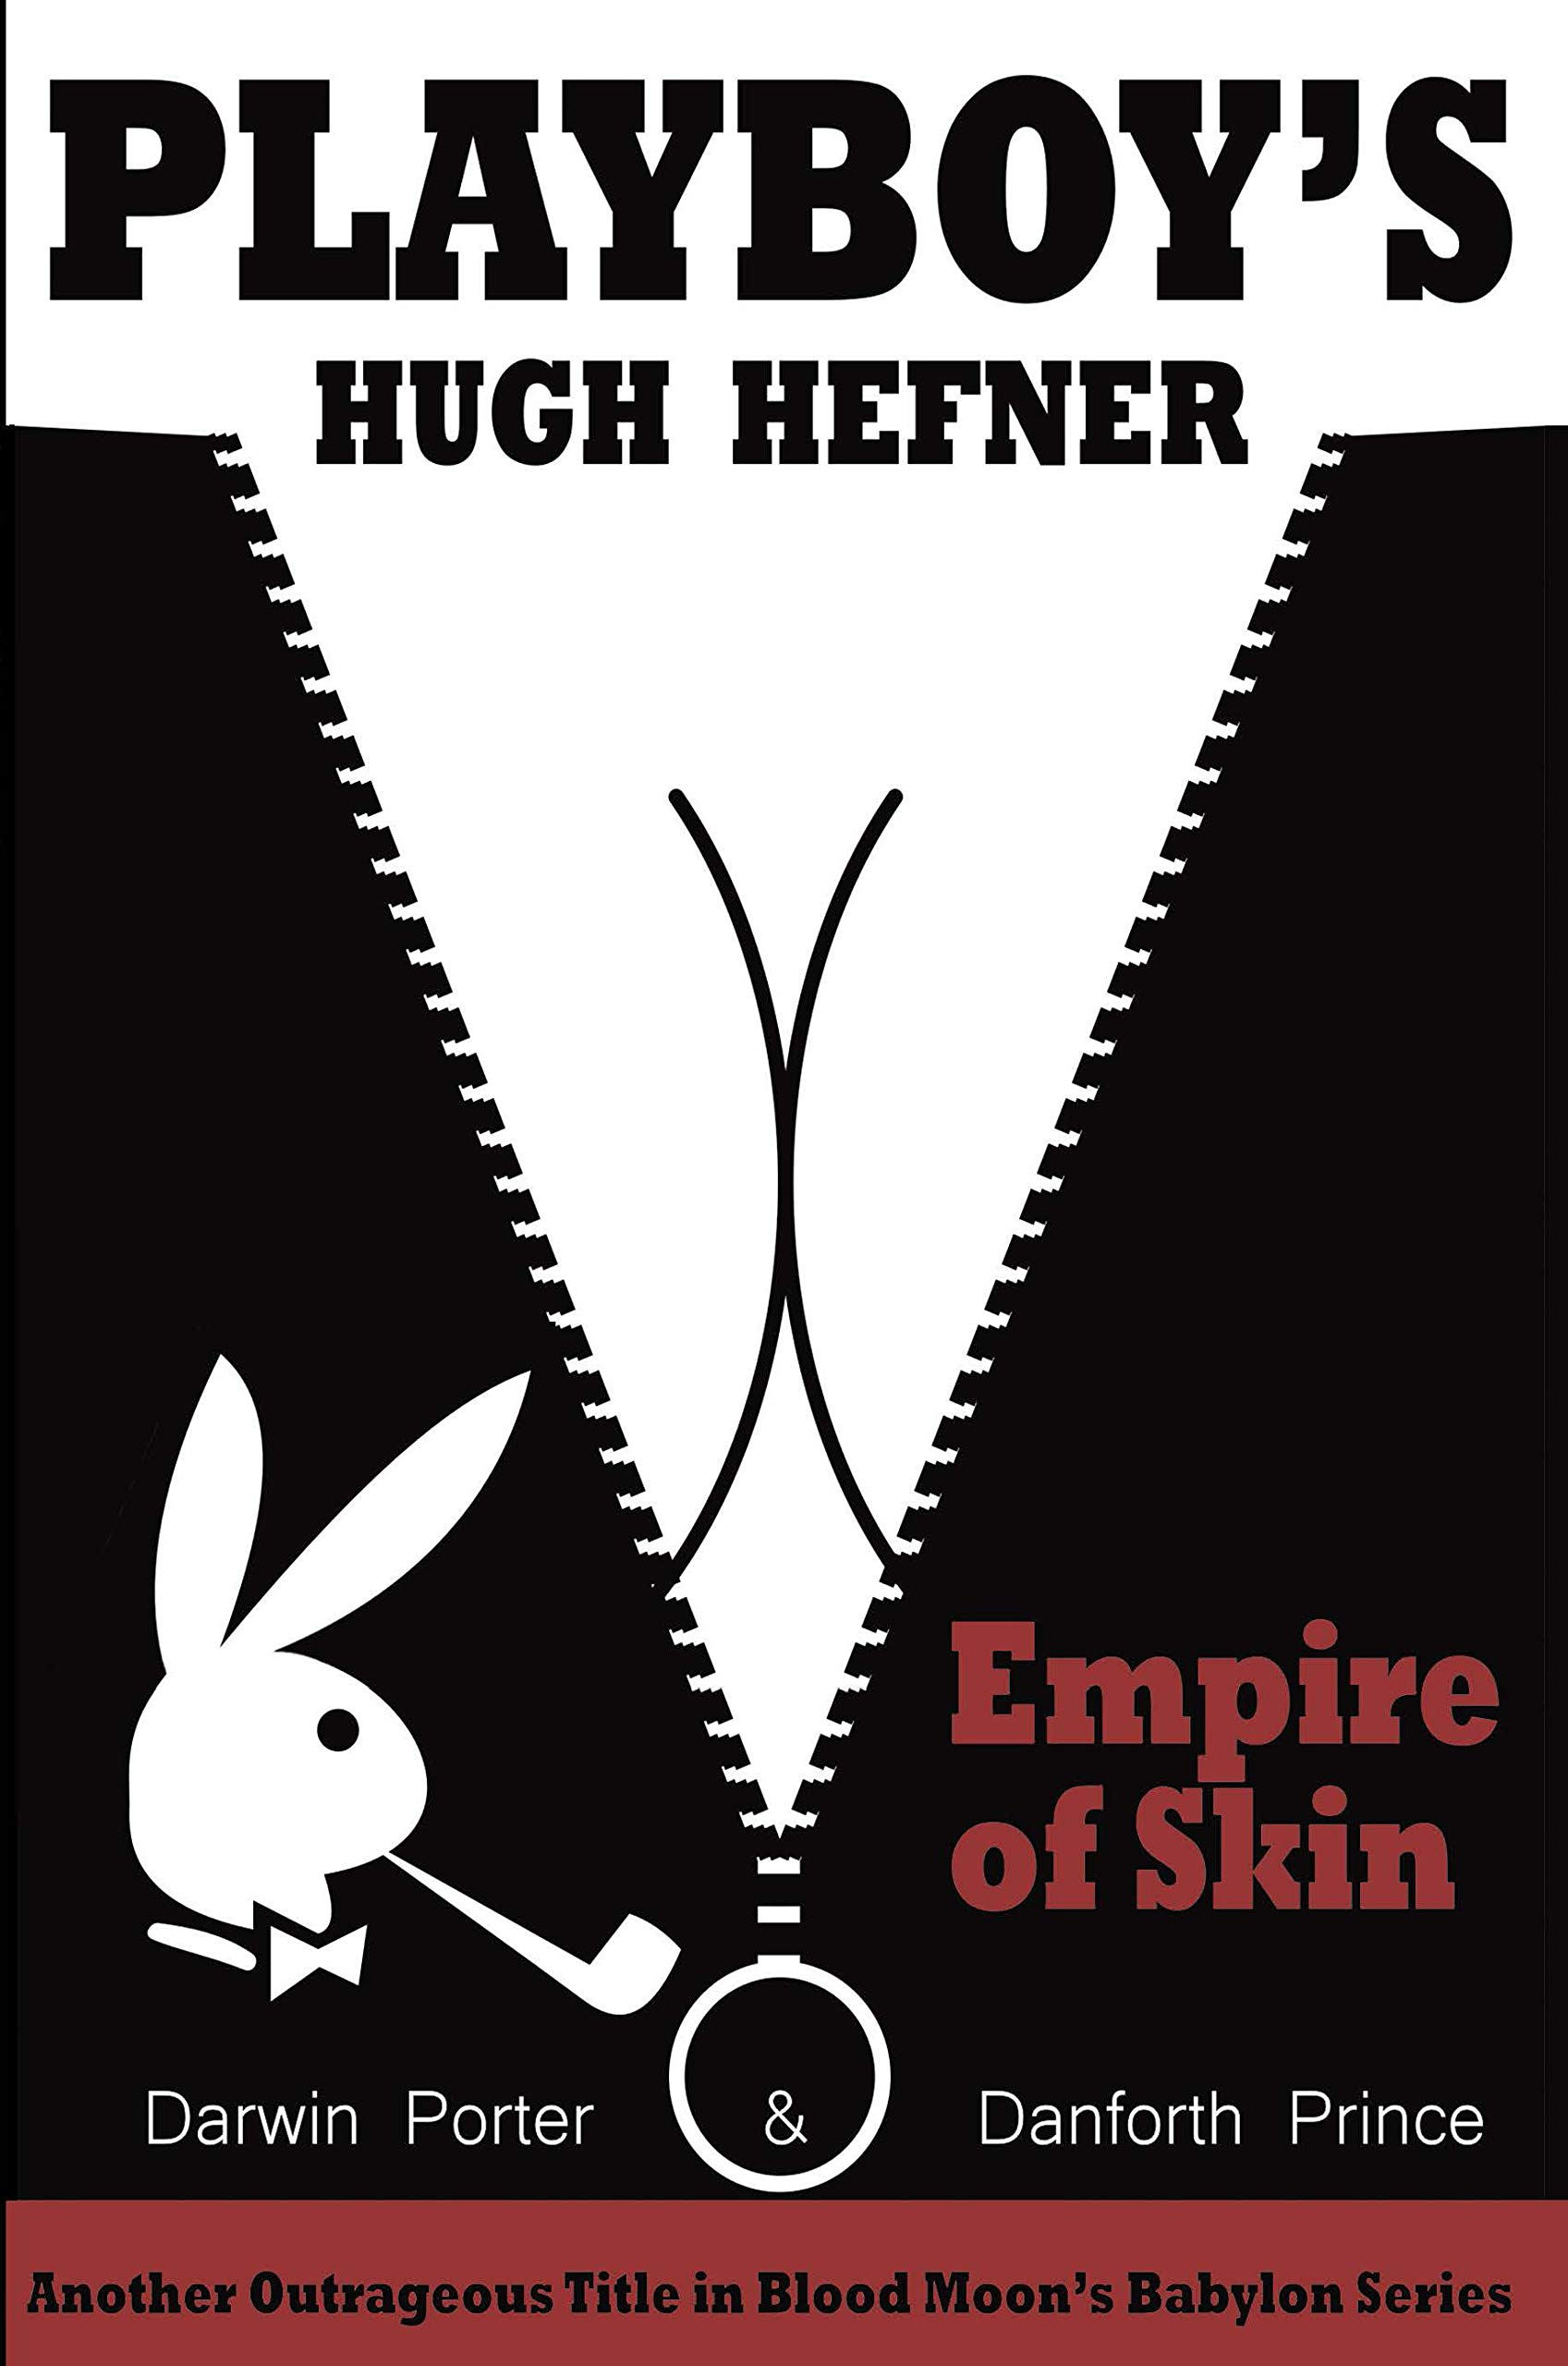 Amazon.com: Playboy's Hugh Hefner: Empire of Skin (Blood Moon's Babylon  Series) (9781936003594): Darwin Porter, Danforth Prince: Books